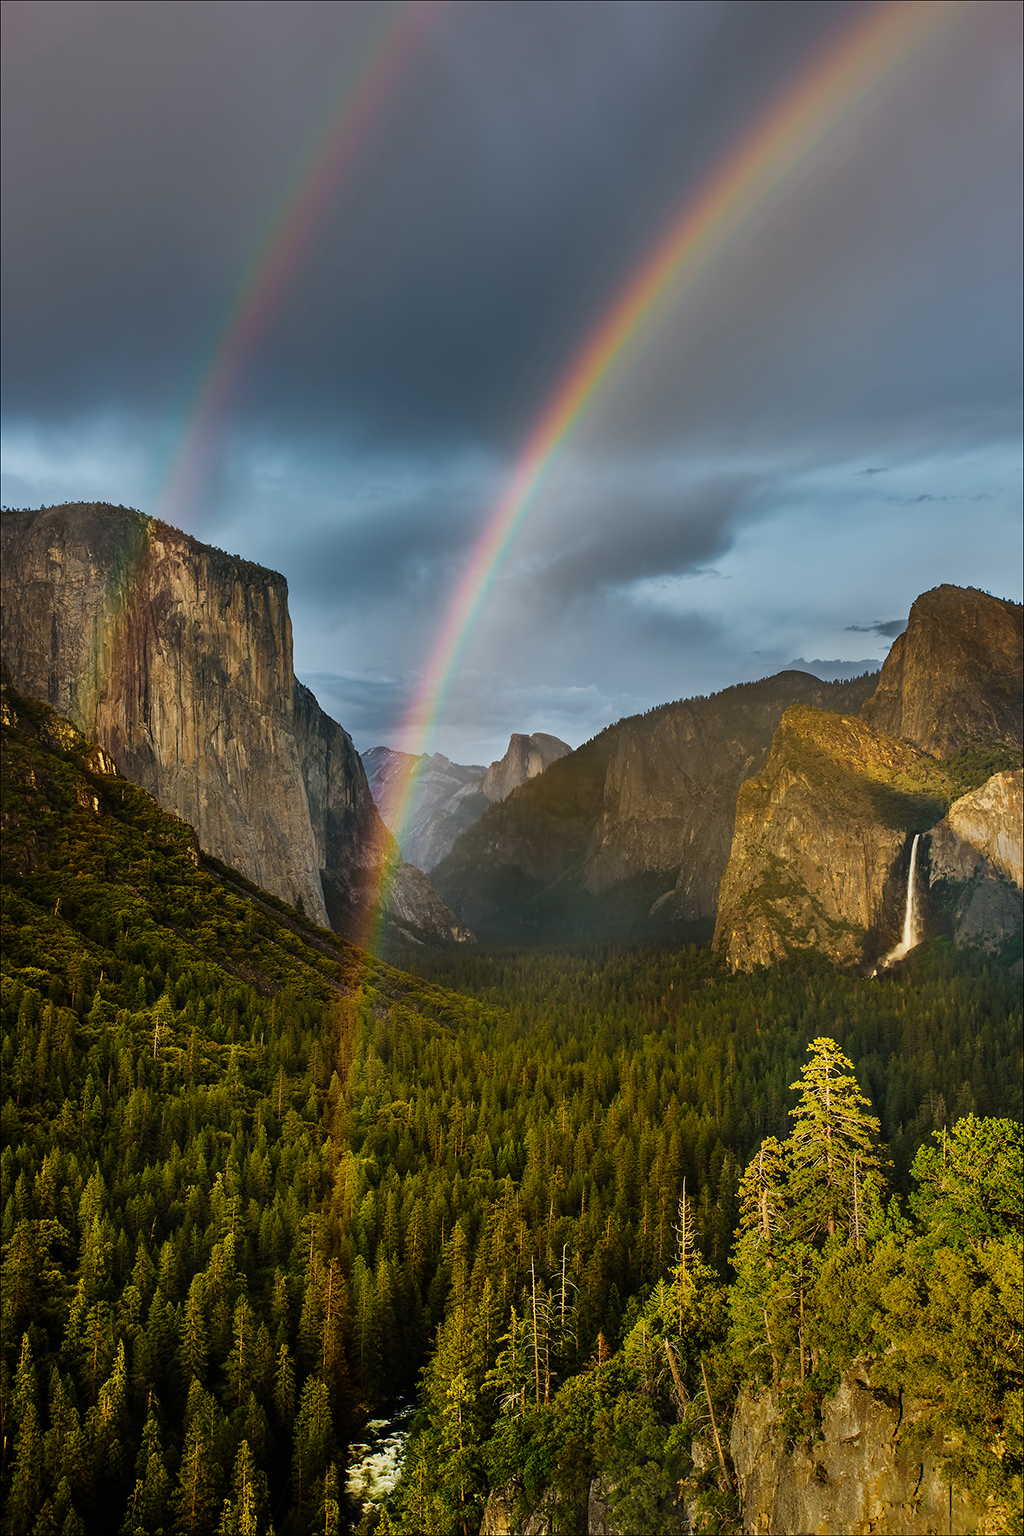 Image of a double rainbow after a lightning storm.